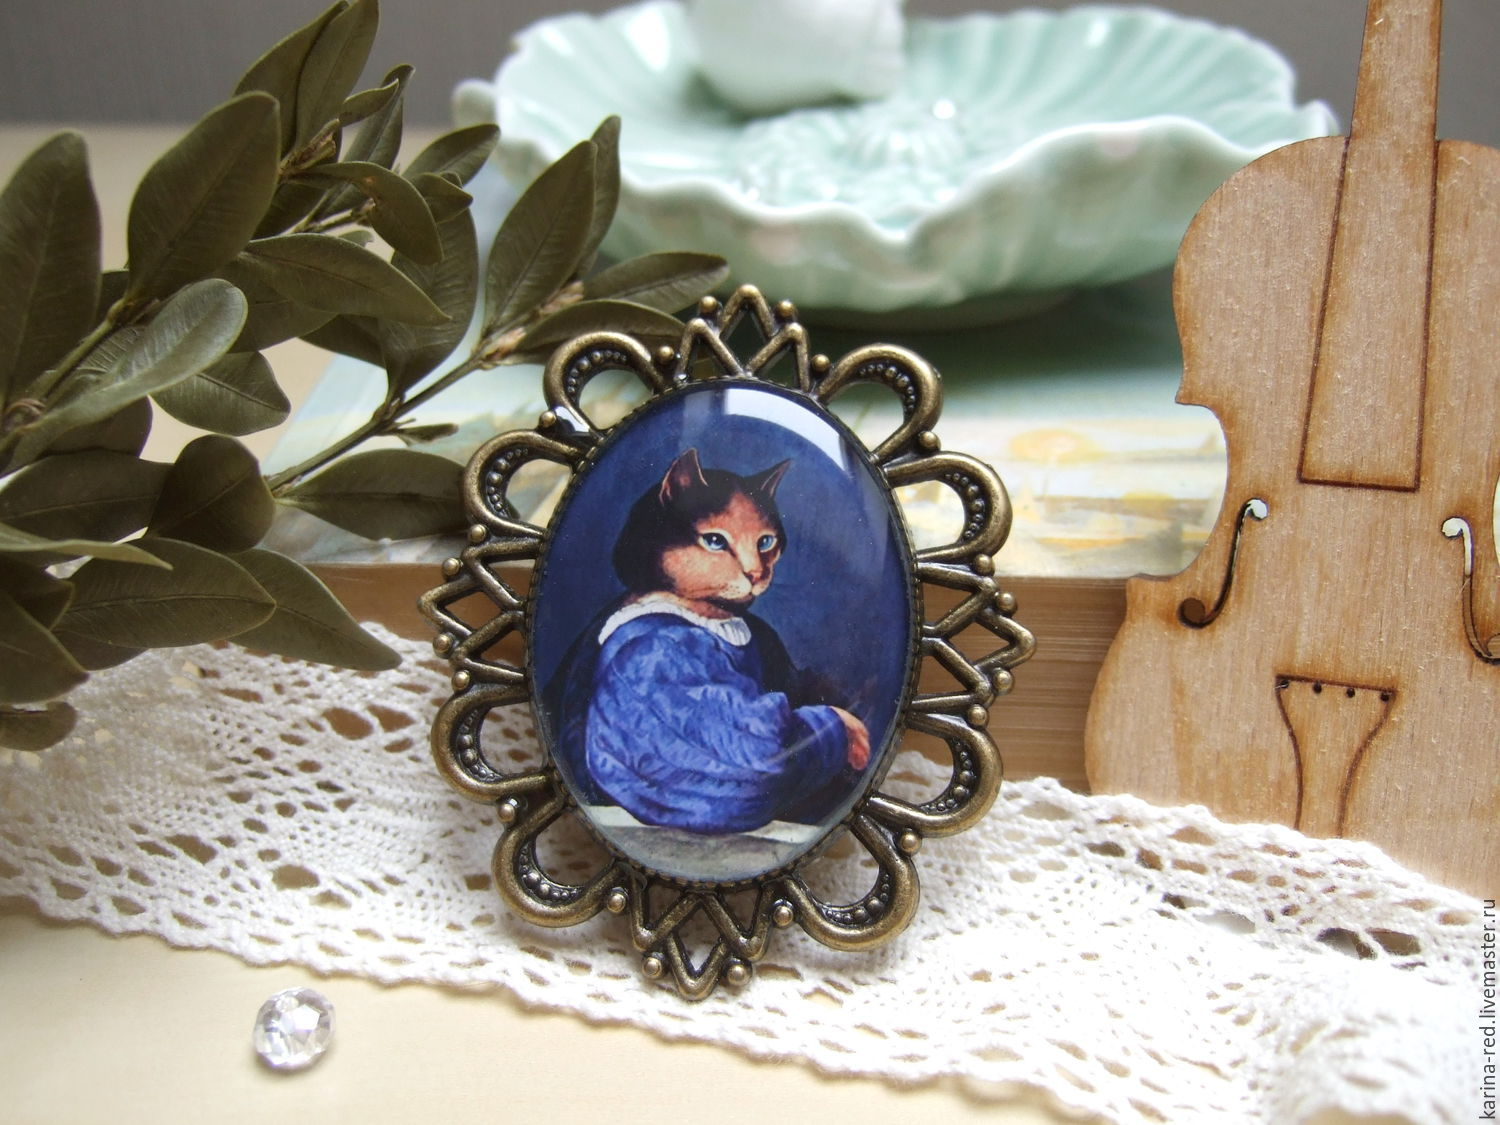 buy original brooch for the cat lover Museum staff decorating painting cat Aristocrat is a gift shop and ornaments in the presence and under the order epoxy jewelry blue white mint blue